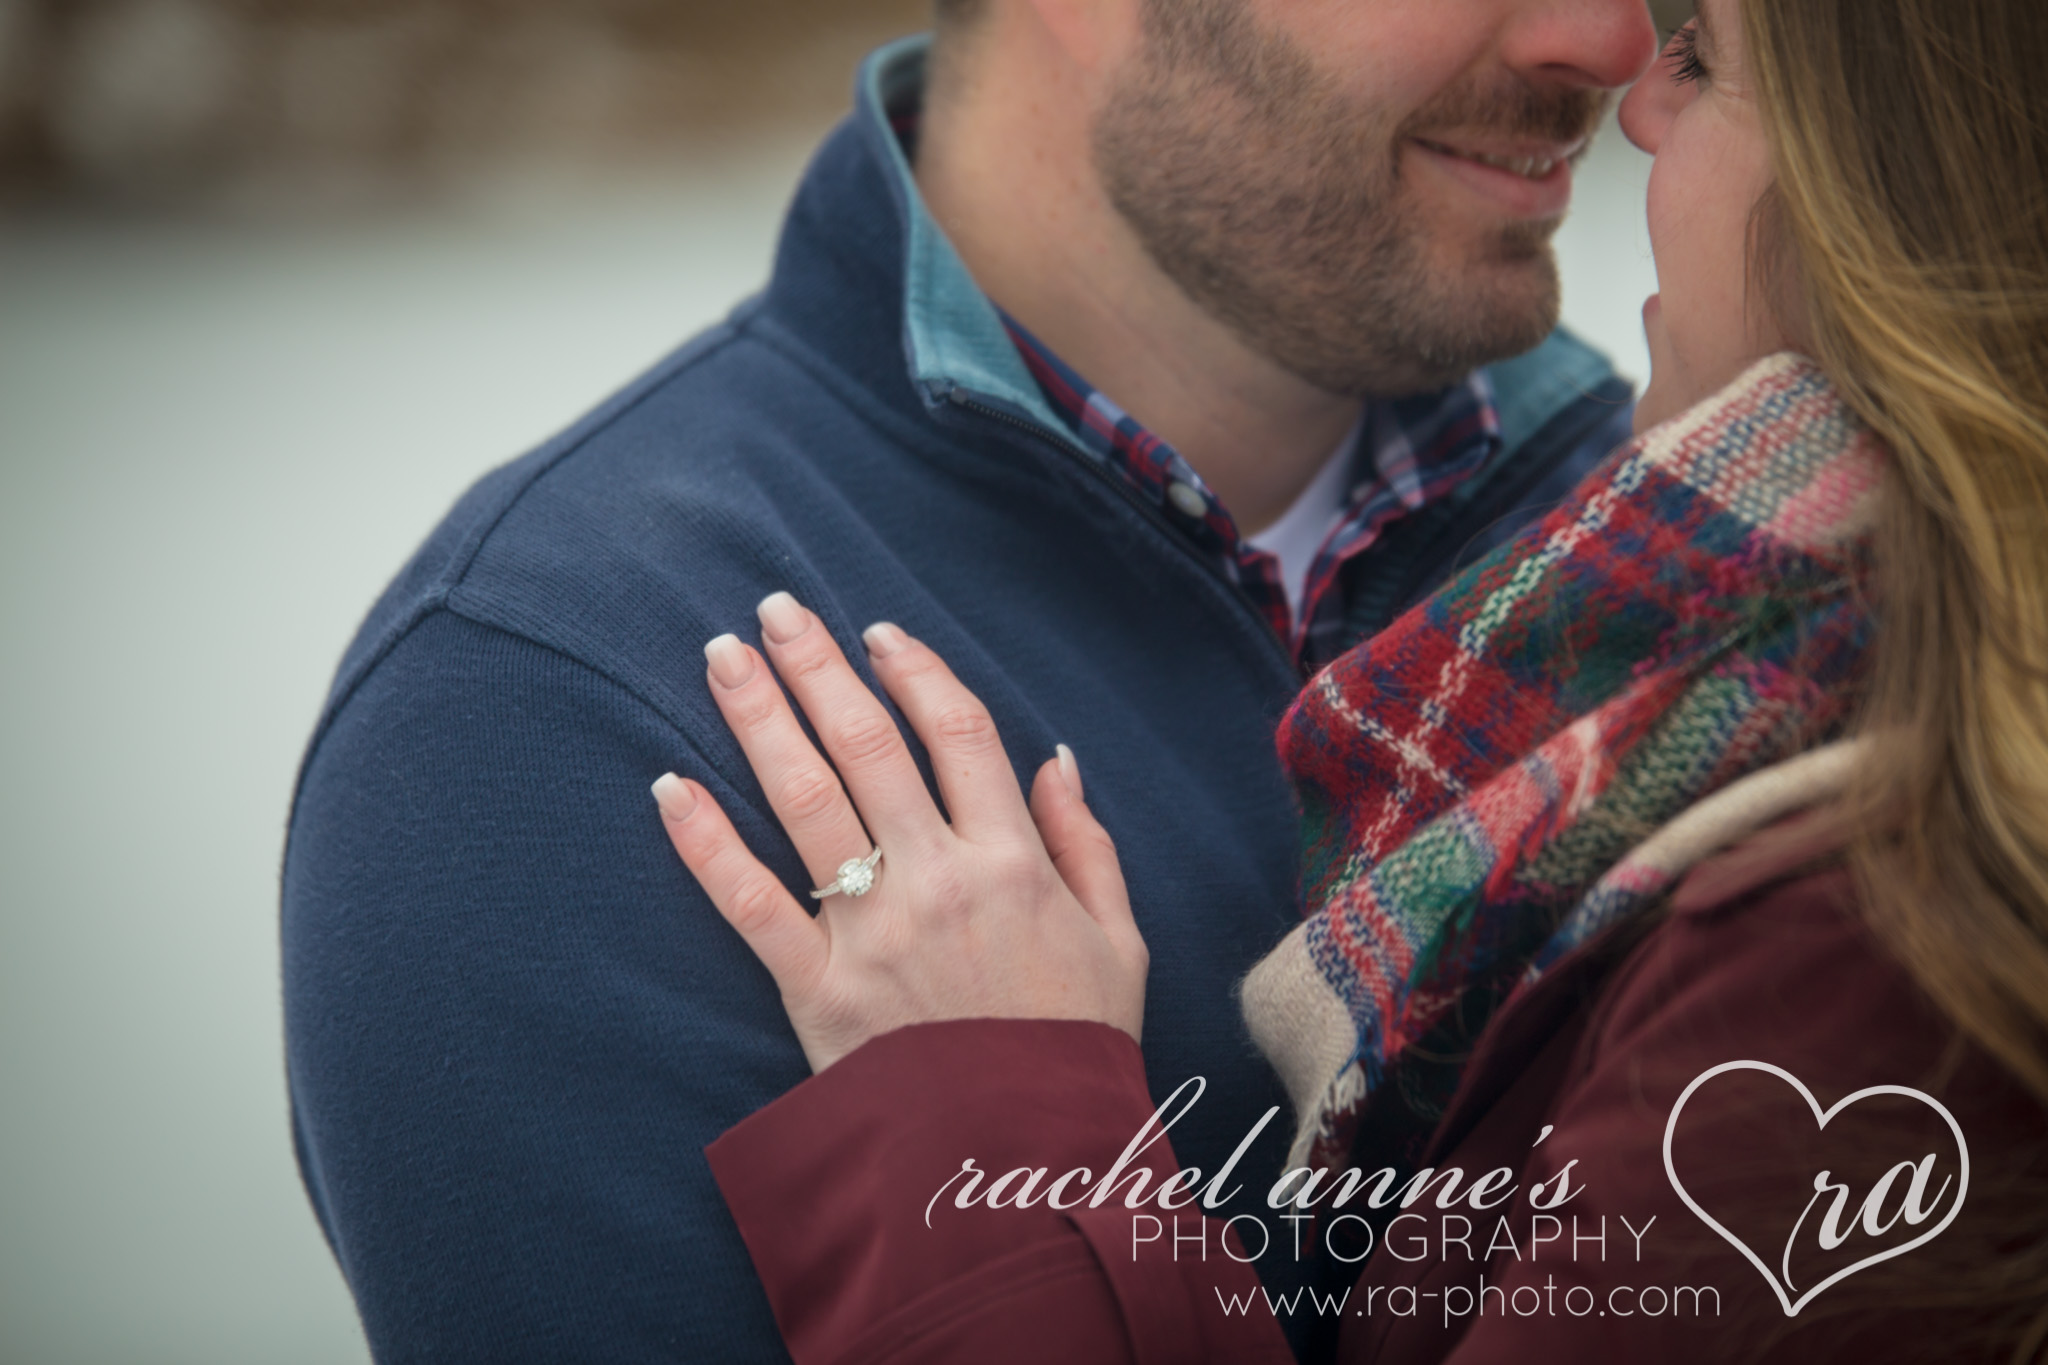 005-JKM-DUBOIS-PA-ENGAGEMENT-PHOTOGRAPHY.jpg